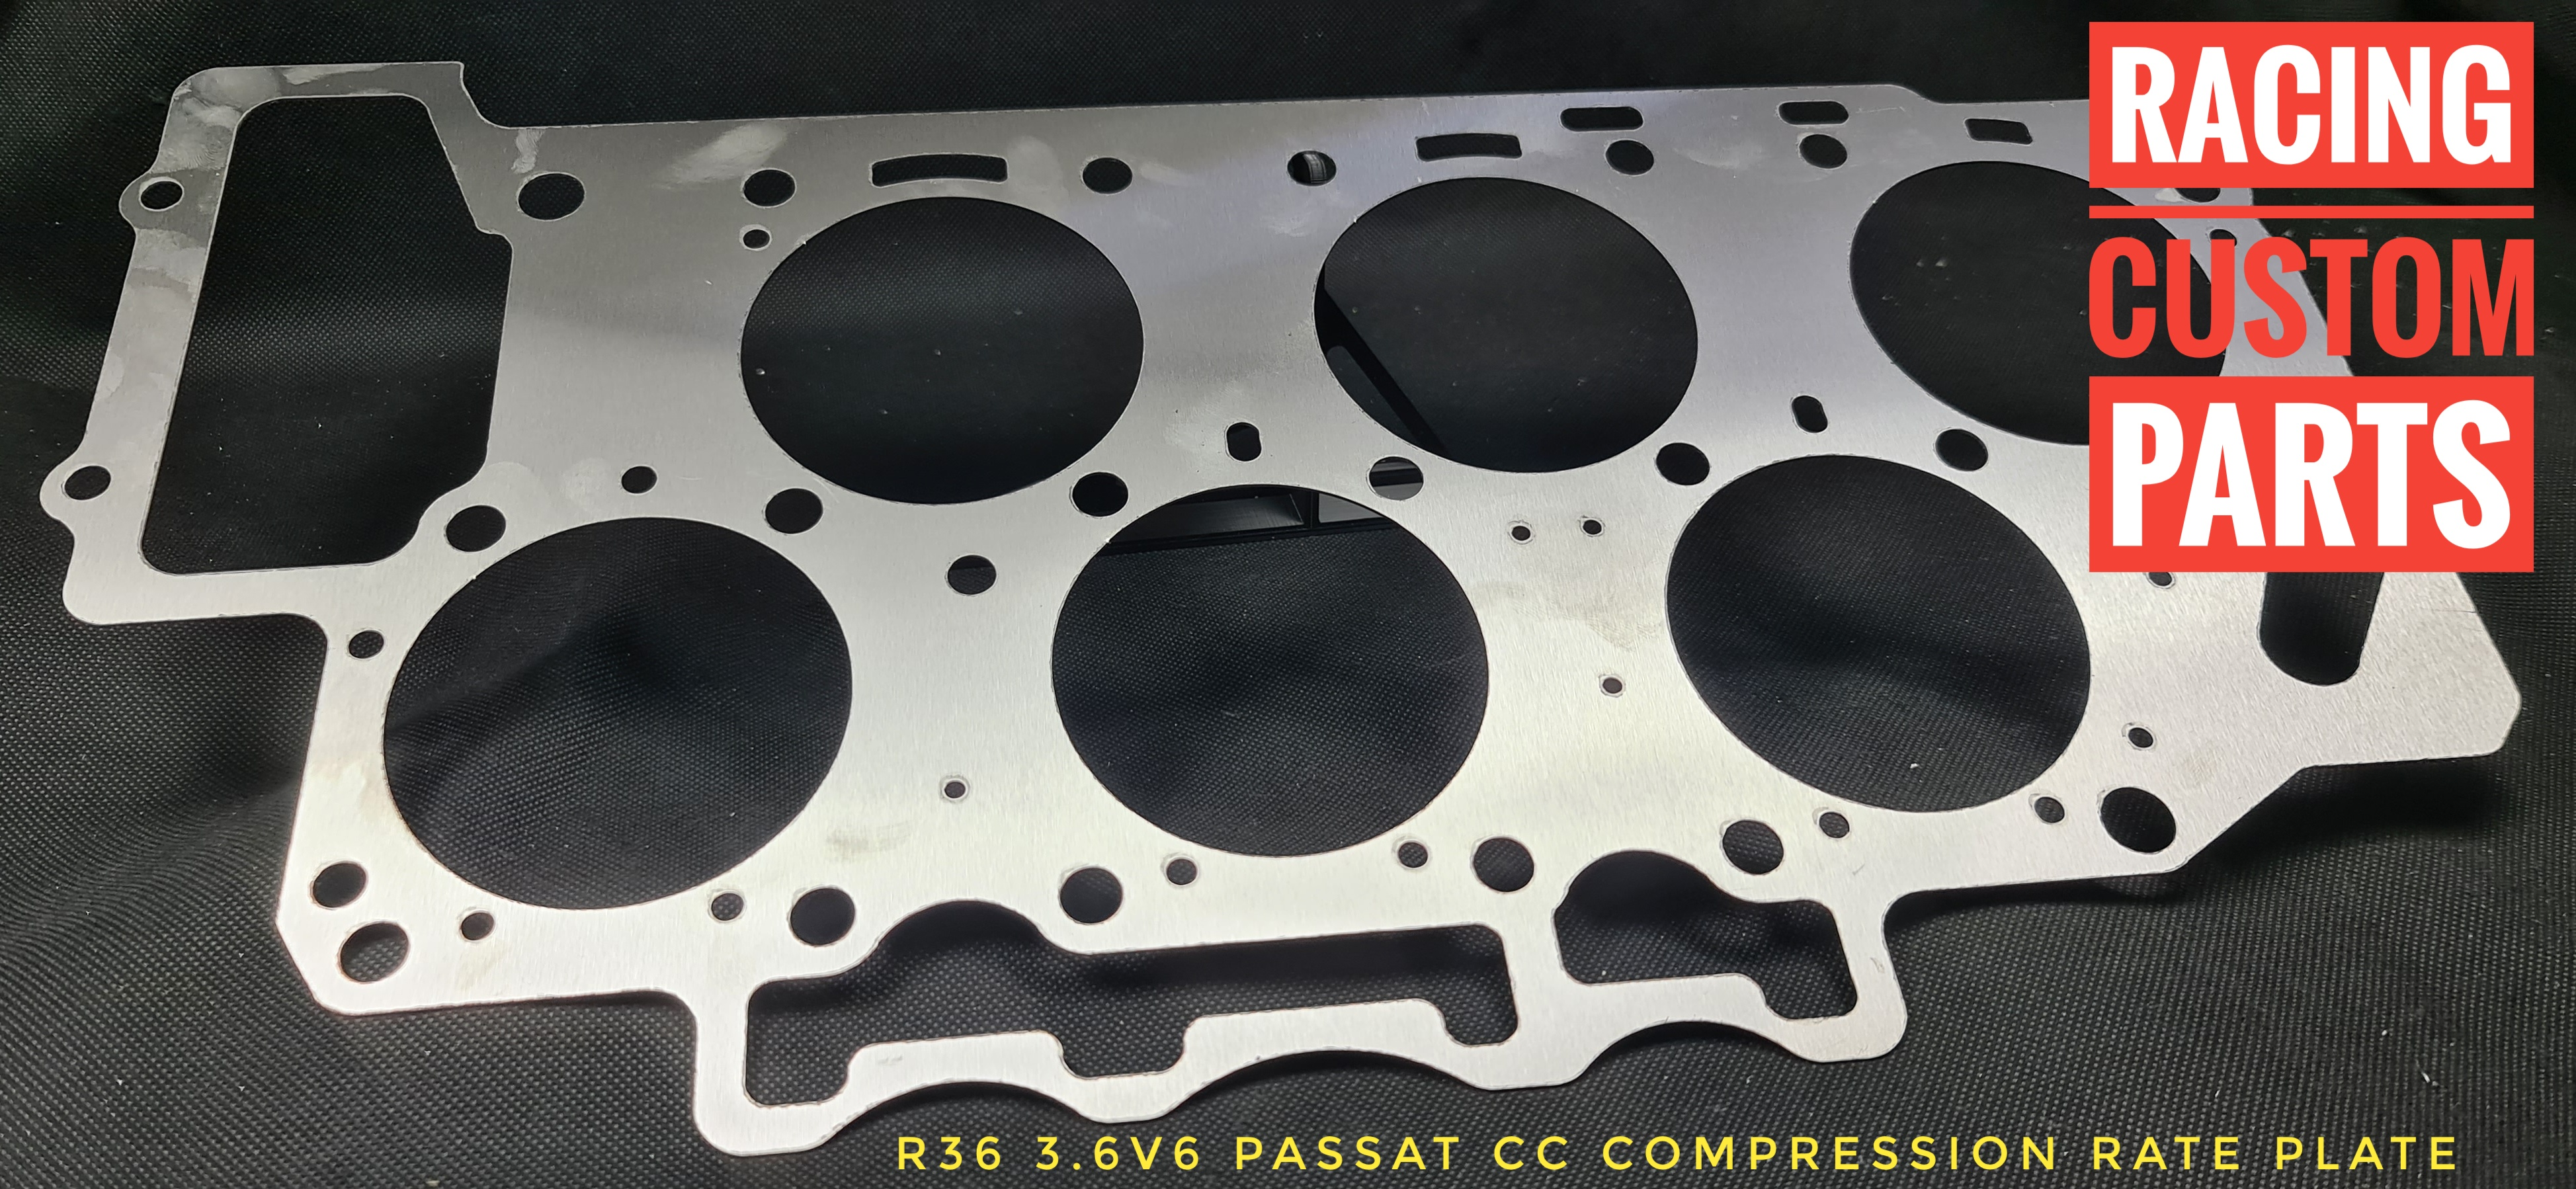 r36 3,6 v6 passat cc compression rate plate cr plate c/r plate billet cnc racing custom parts passat cc turbo